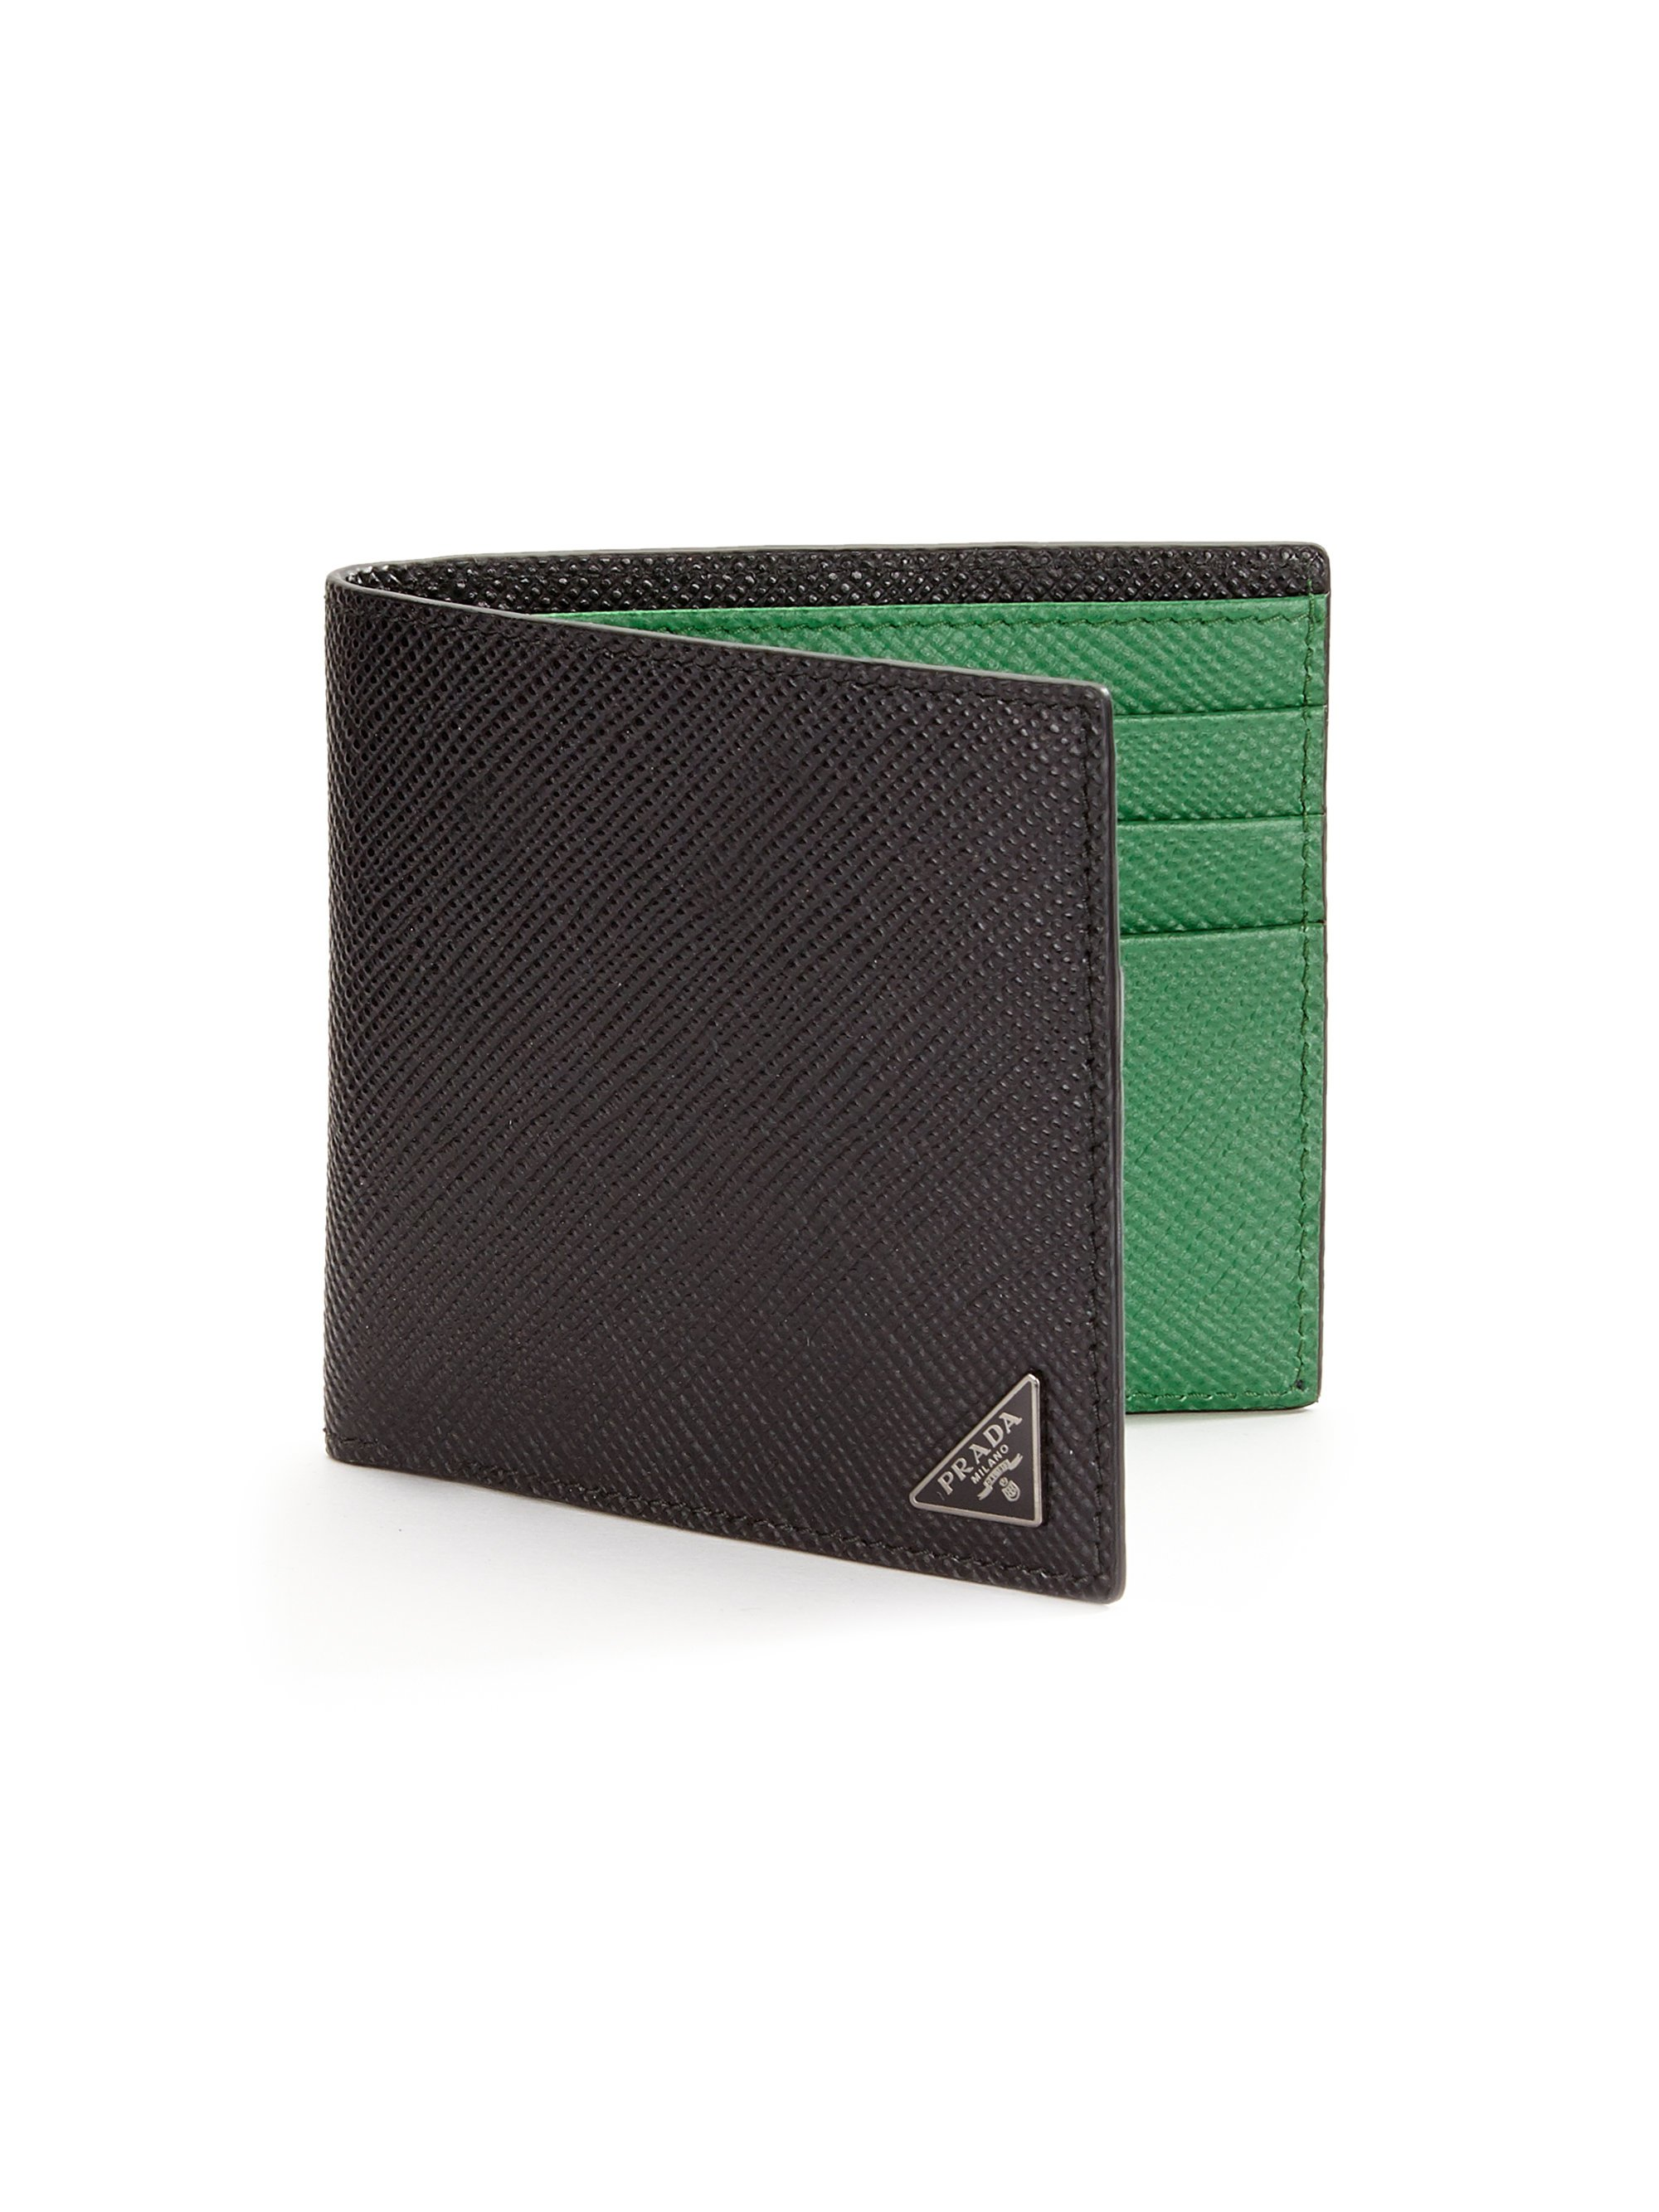 Prada Orizzontale Wallet in Green for Men (black green) | Lyst